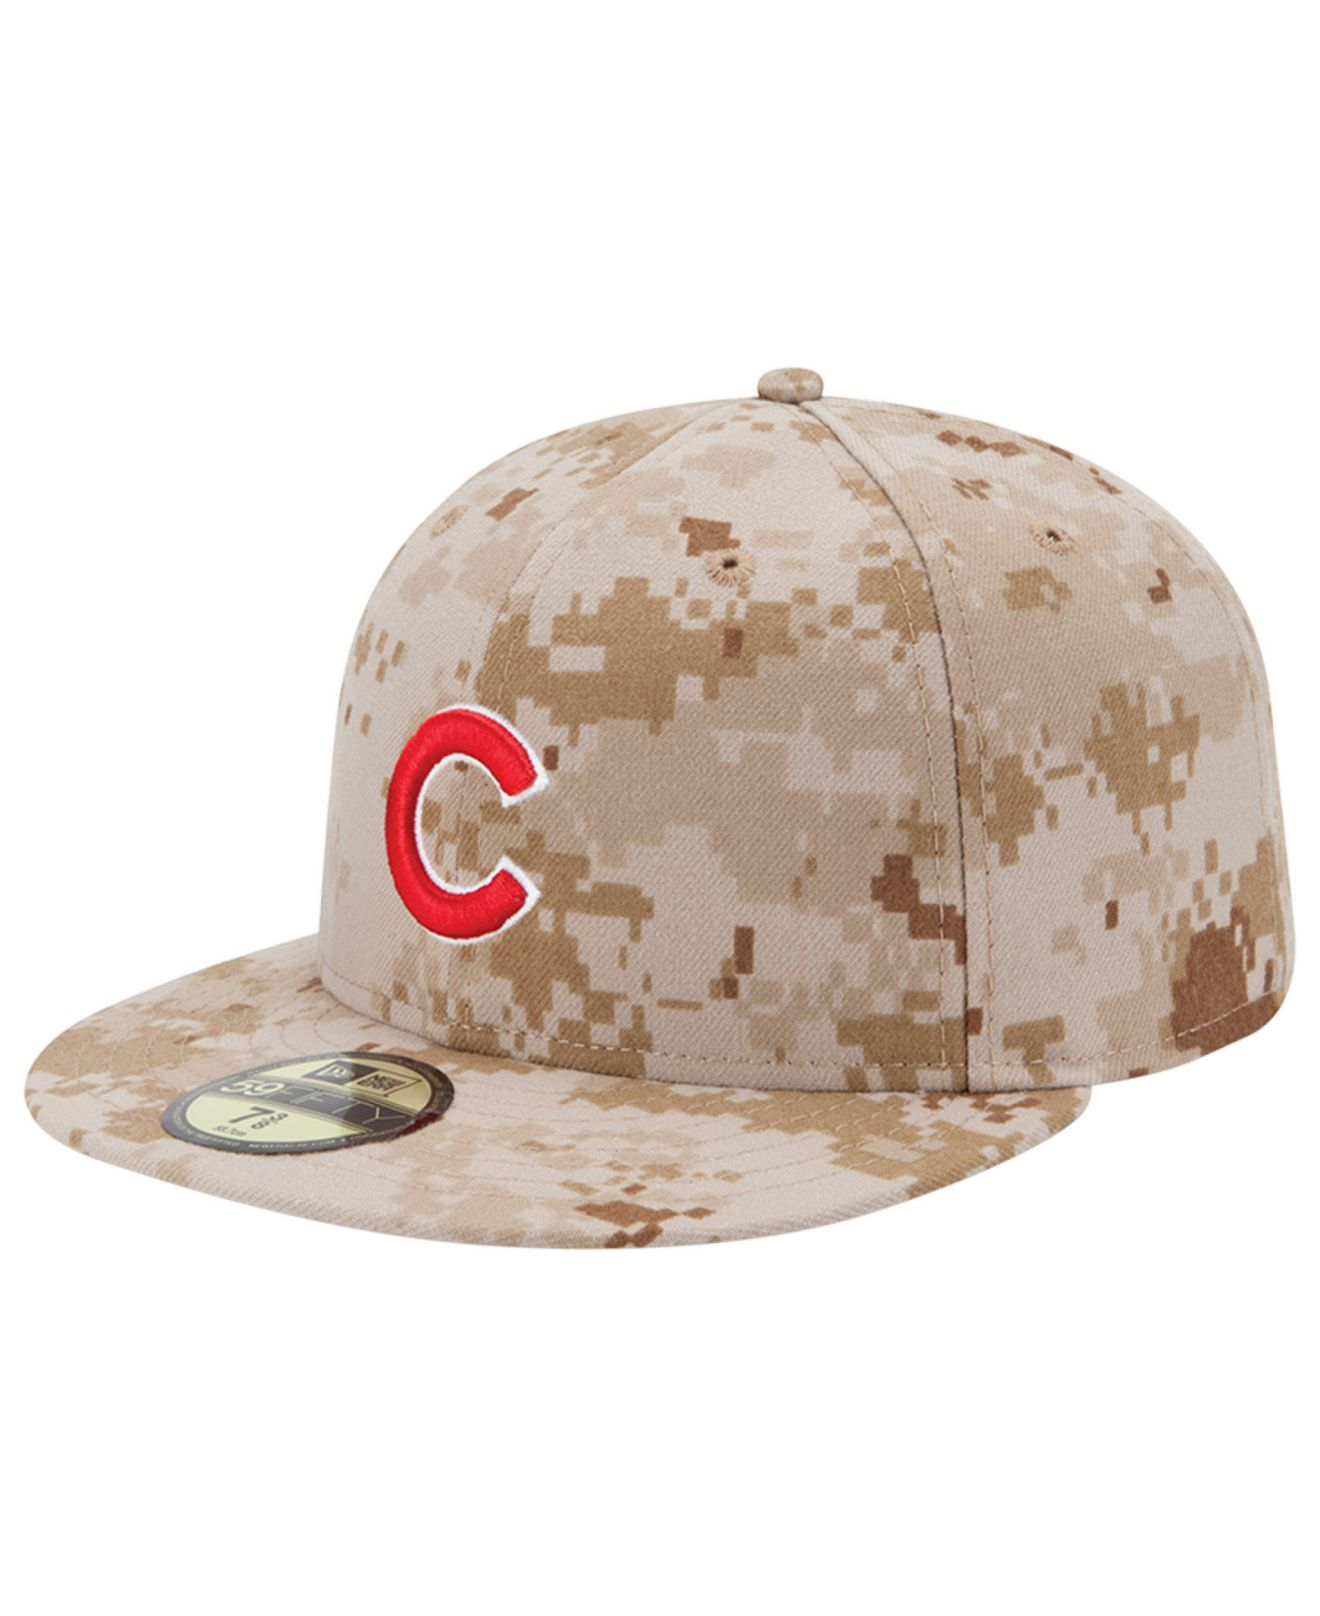 ... top quality mlb memorial day hats for sale ed20f 7f8fb 5a6f64a3fd5